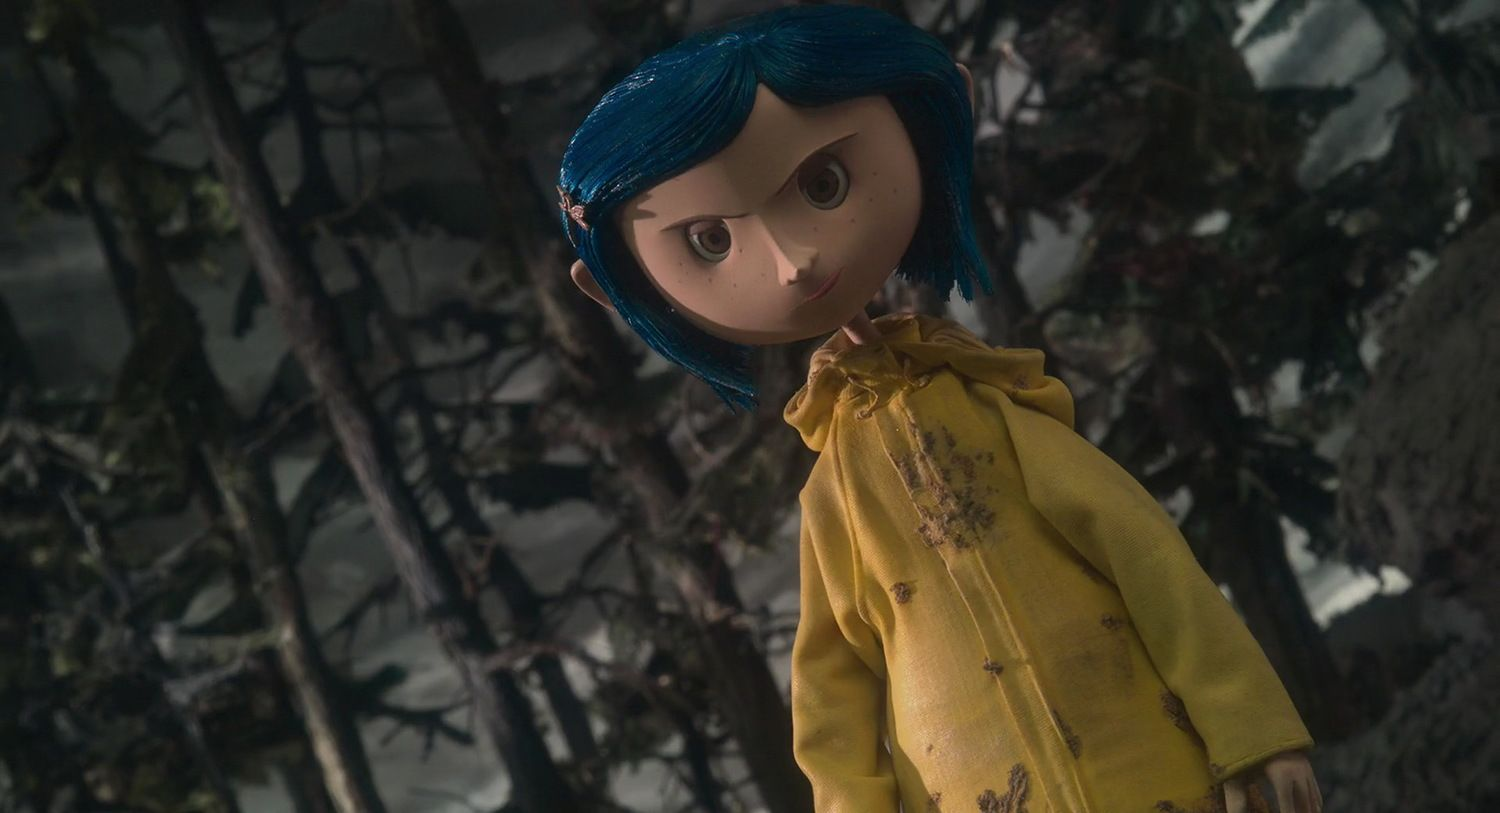 Image Result For Coraline Screencap Coraline Coraline Aesthetic Animation